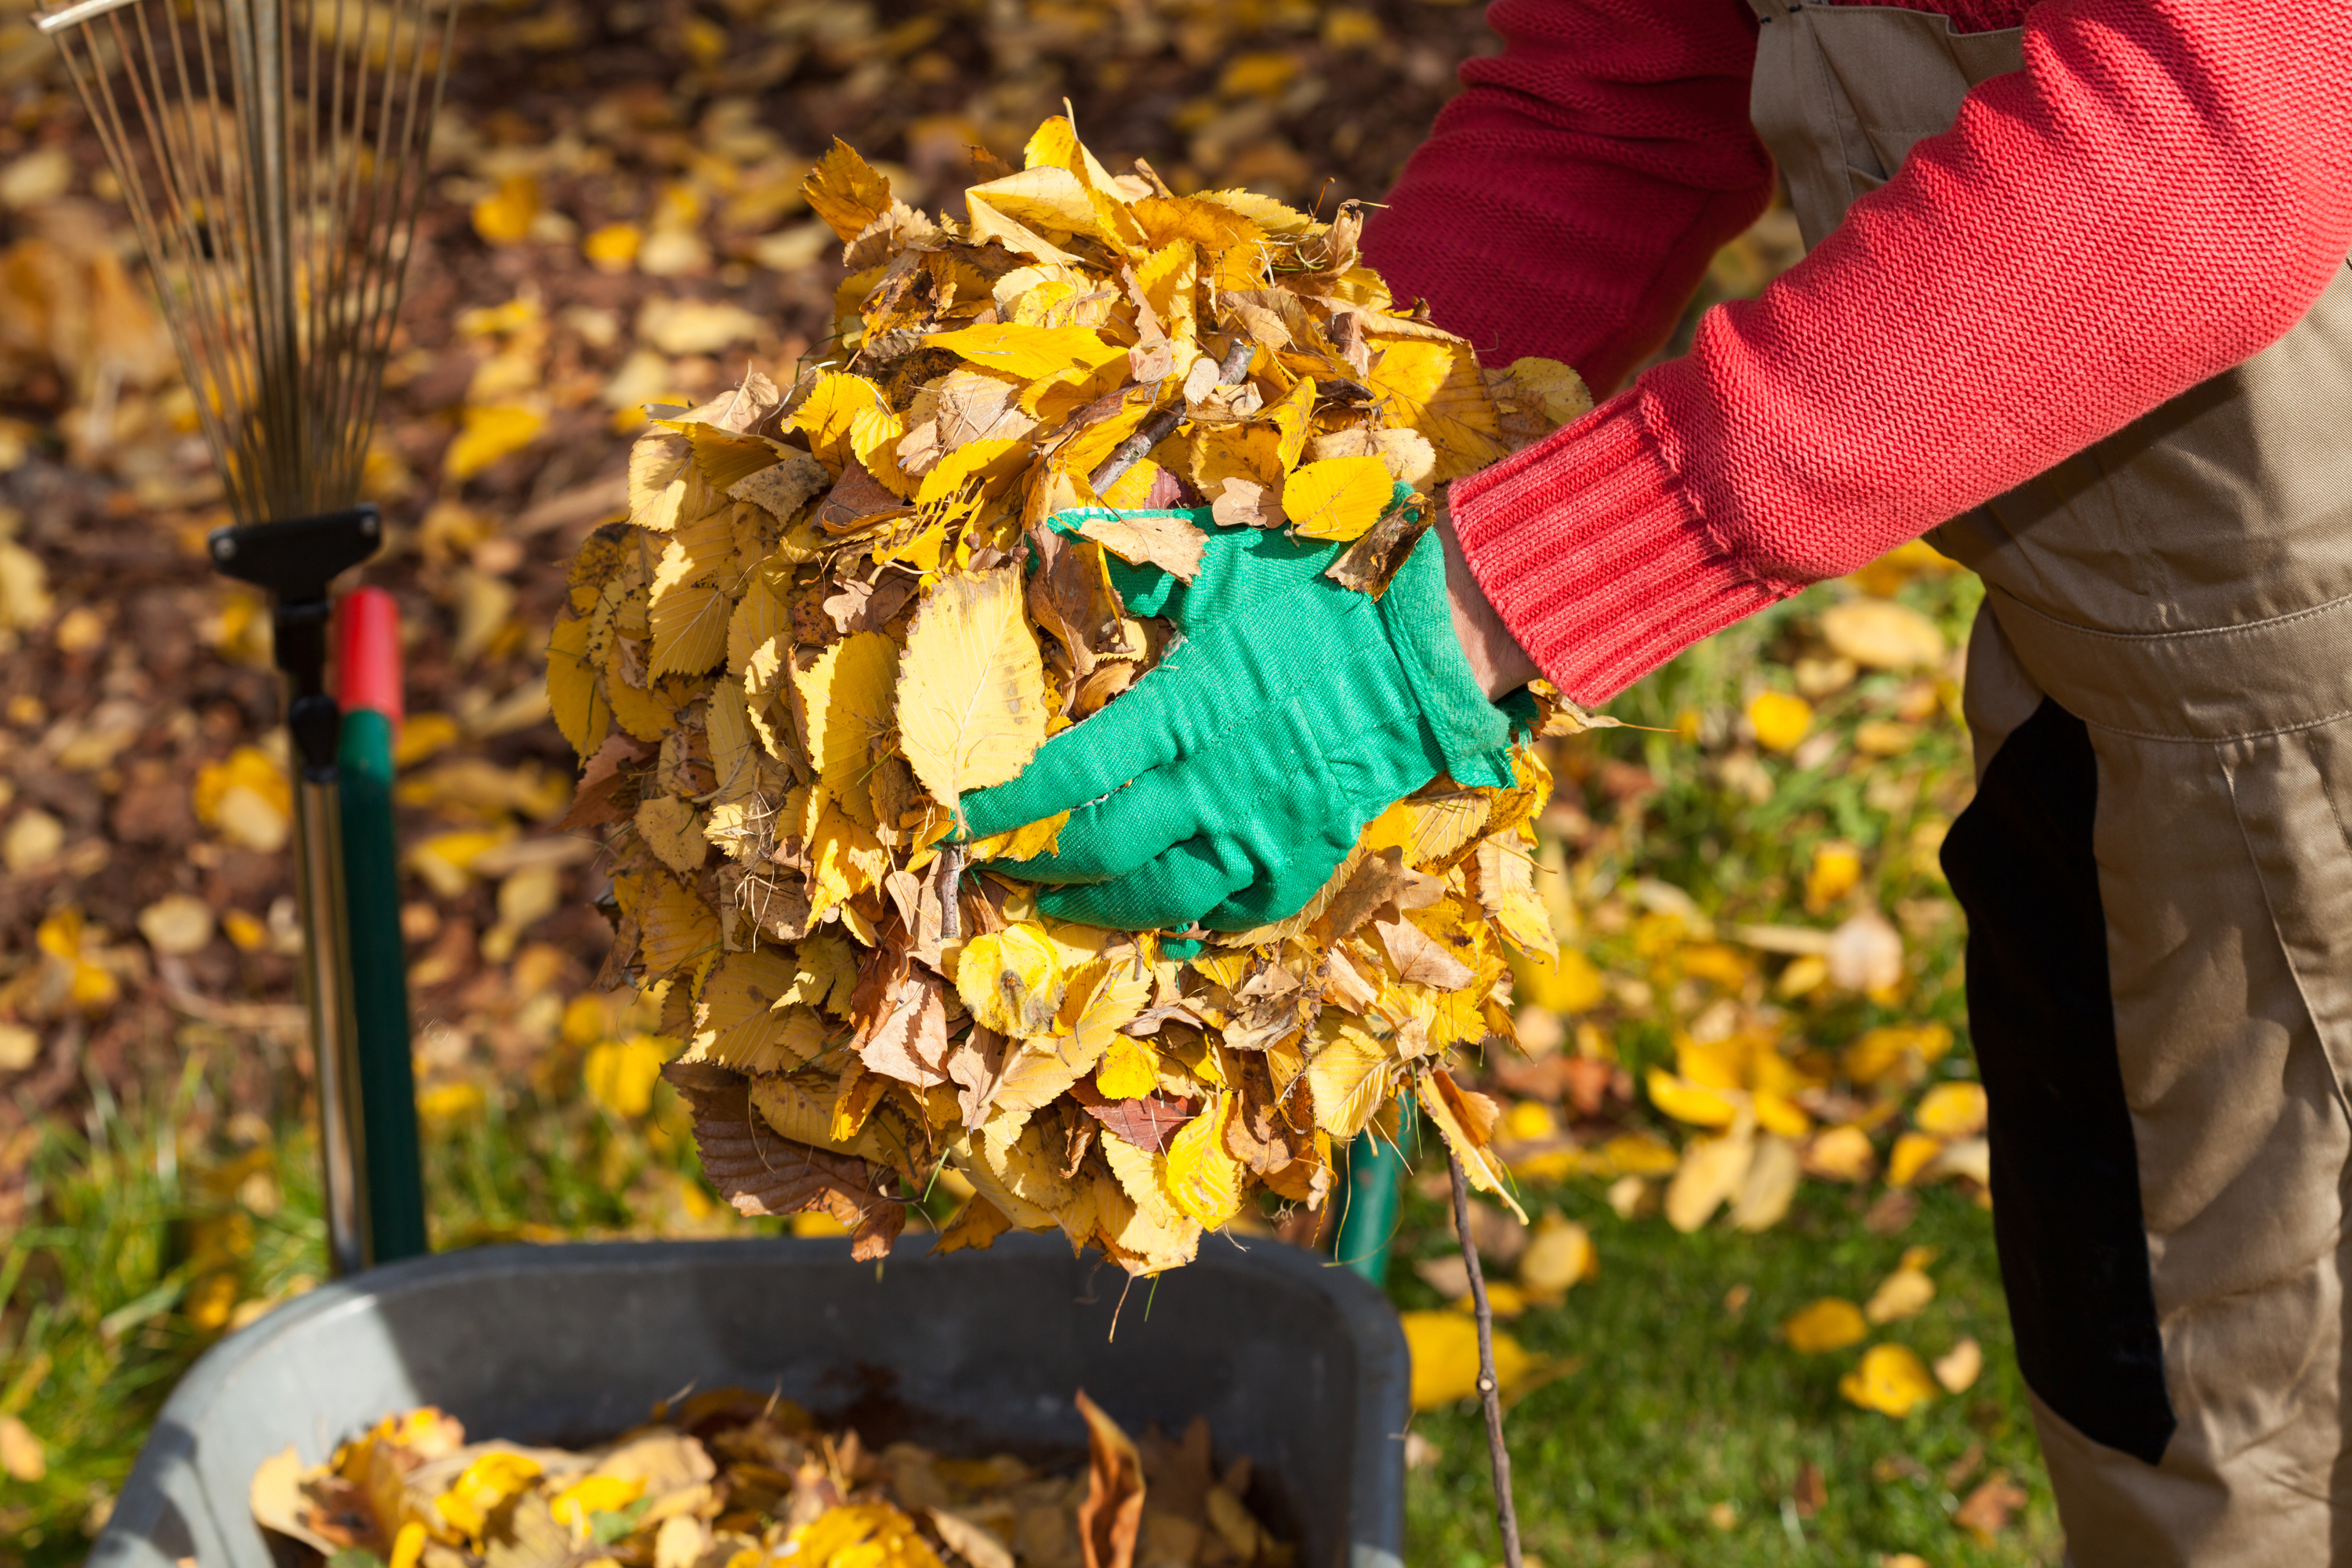 November is the perfect month to start preparing your compost. Read this post on the best gardening tips for the month of November.